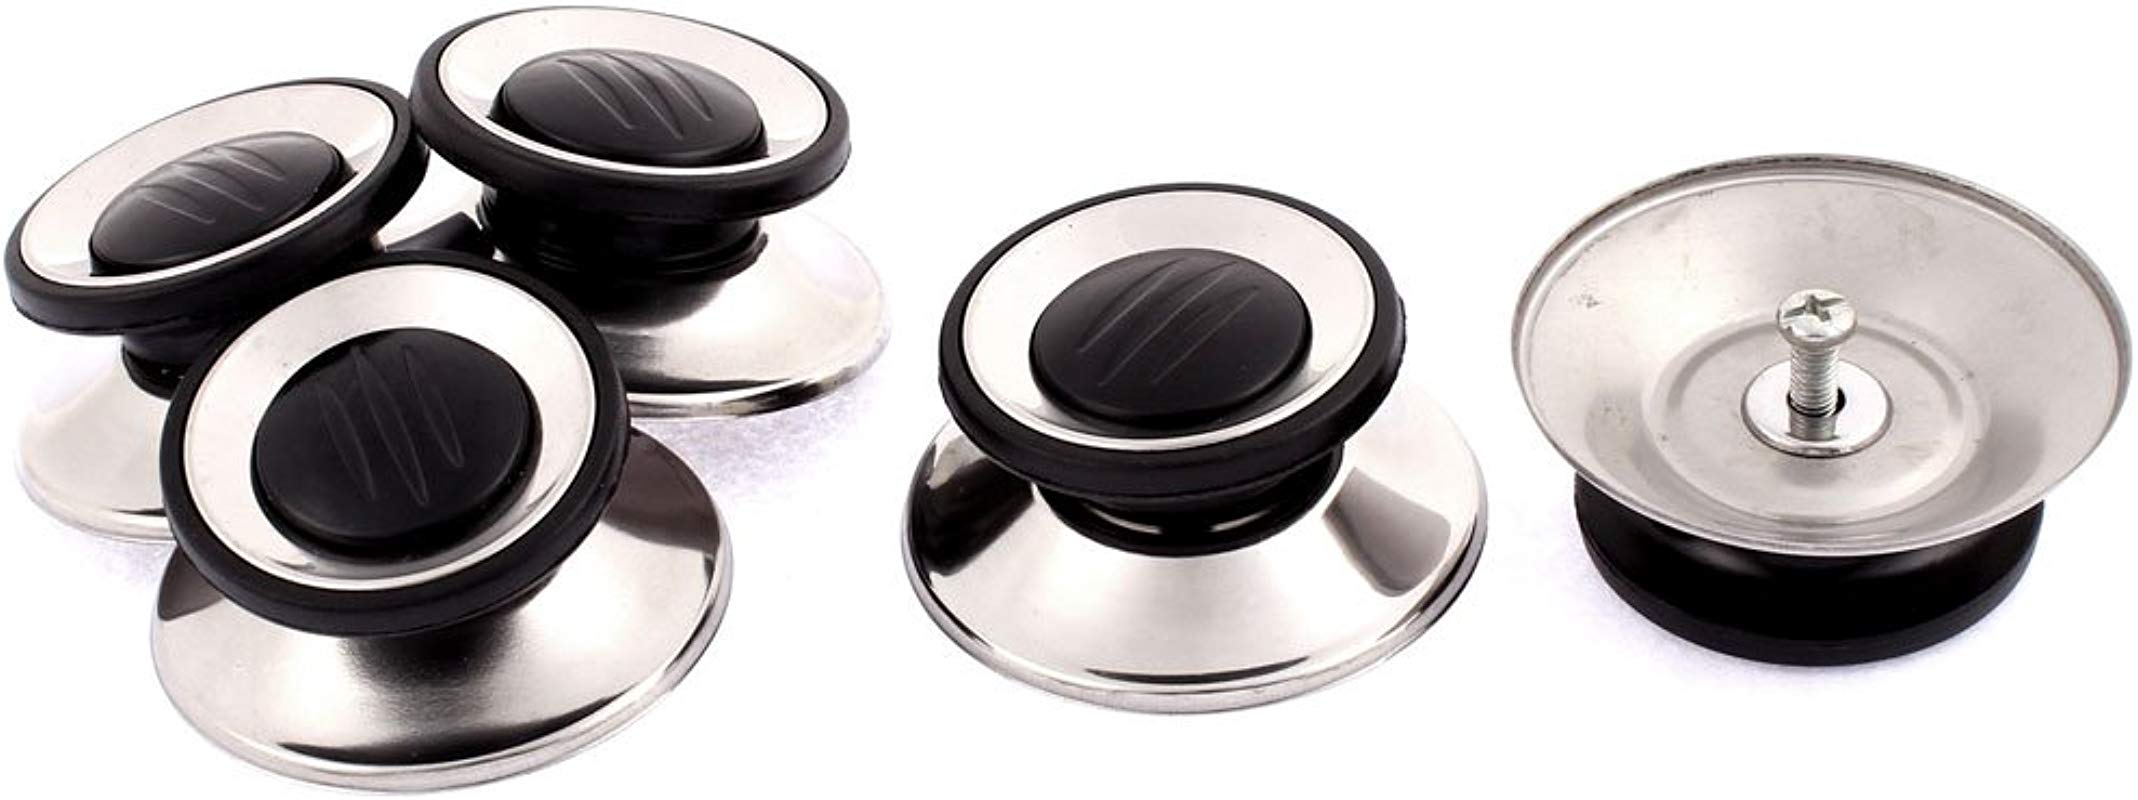 Uxcell Kitchen Cookware Utensil Pot Lid Cover Holding Knob Handle 5Pcs